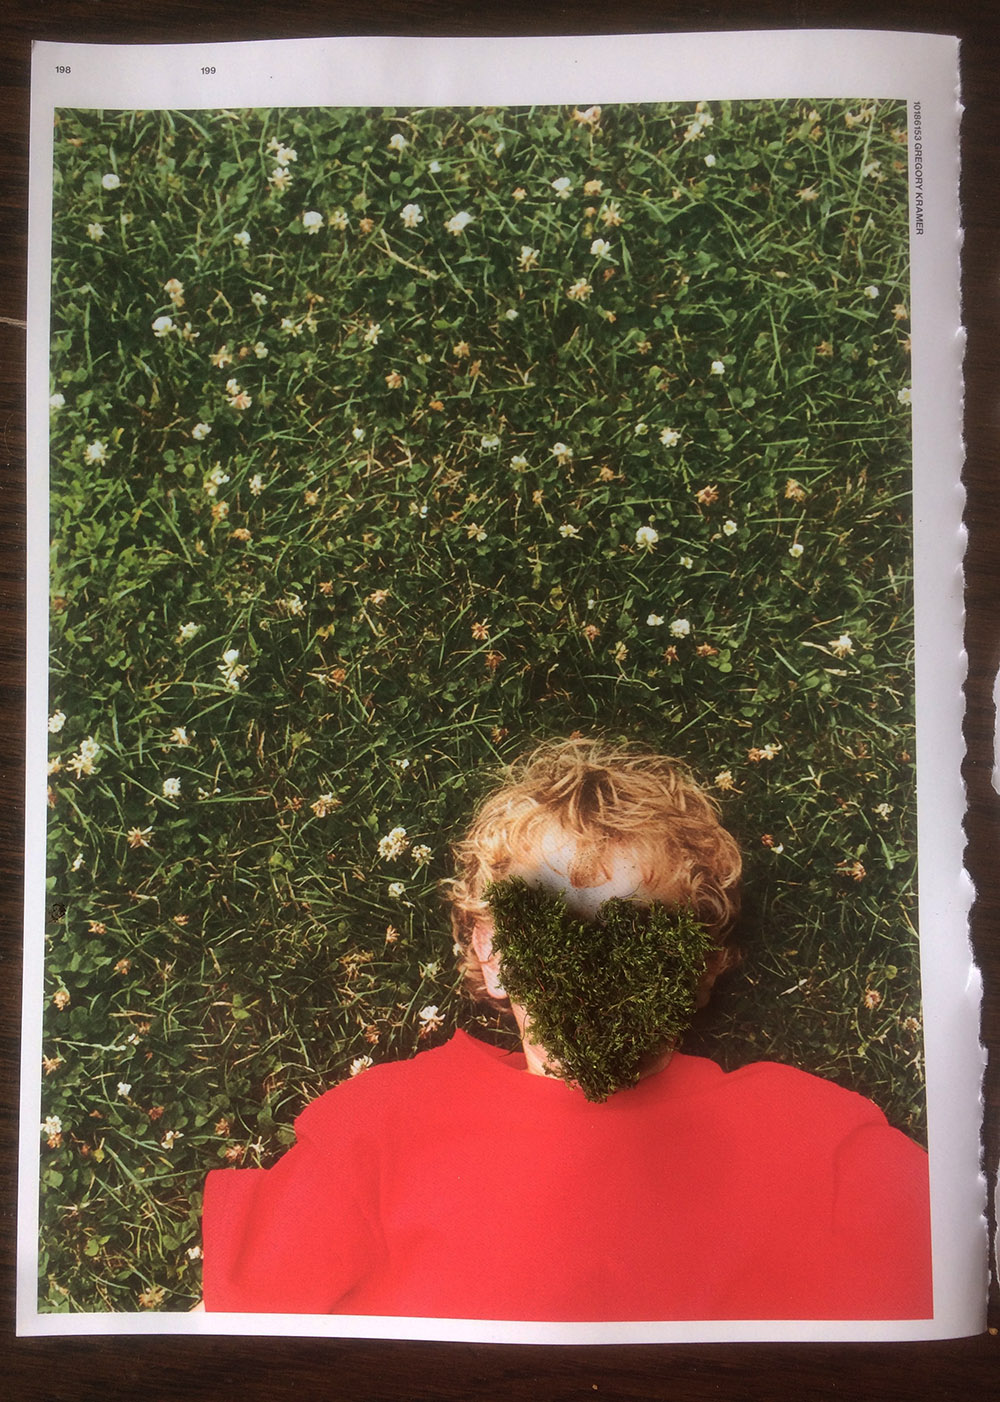 collage of a boy on a red top against green grass, the boy's face is covered with live moss, work by student Francesca Scott-Sills